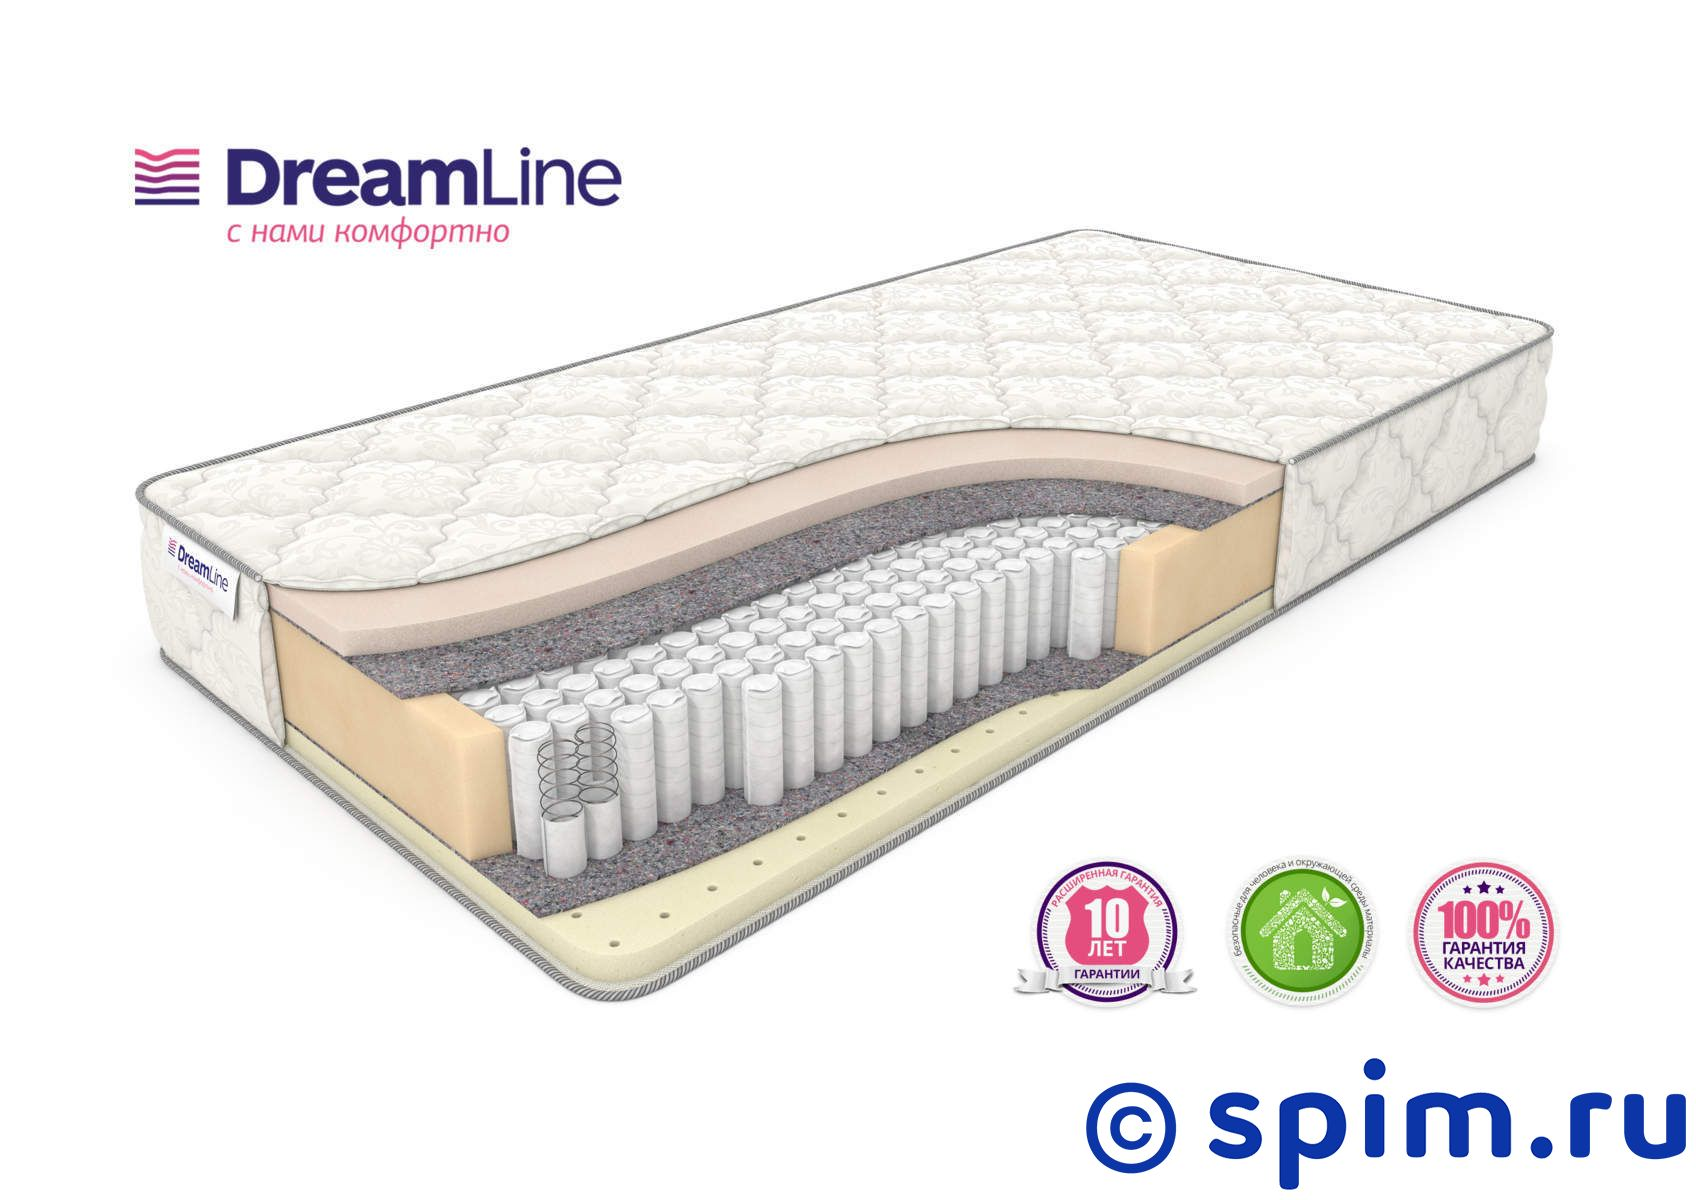 Матрас DreamLine Memory Sleep S1000 120х190 см матрас dreamline memory dream s 1000 180x190